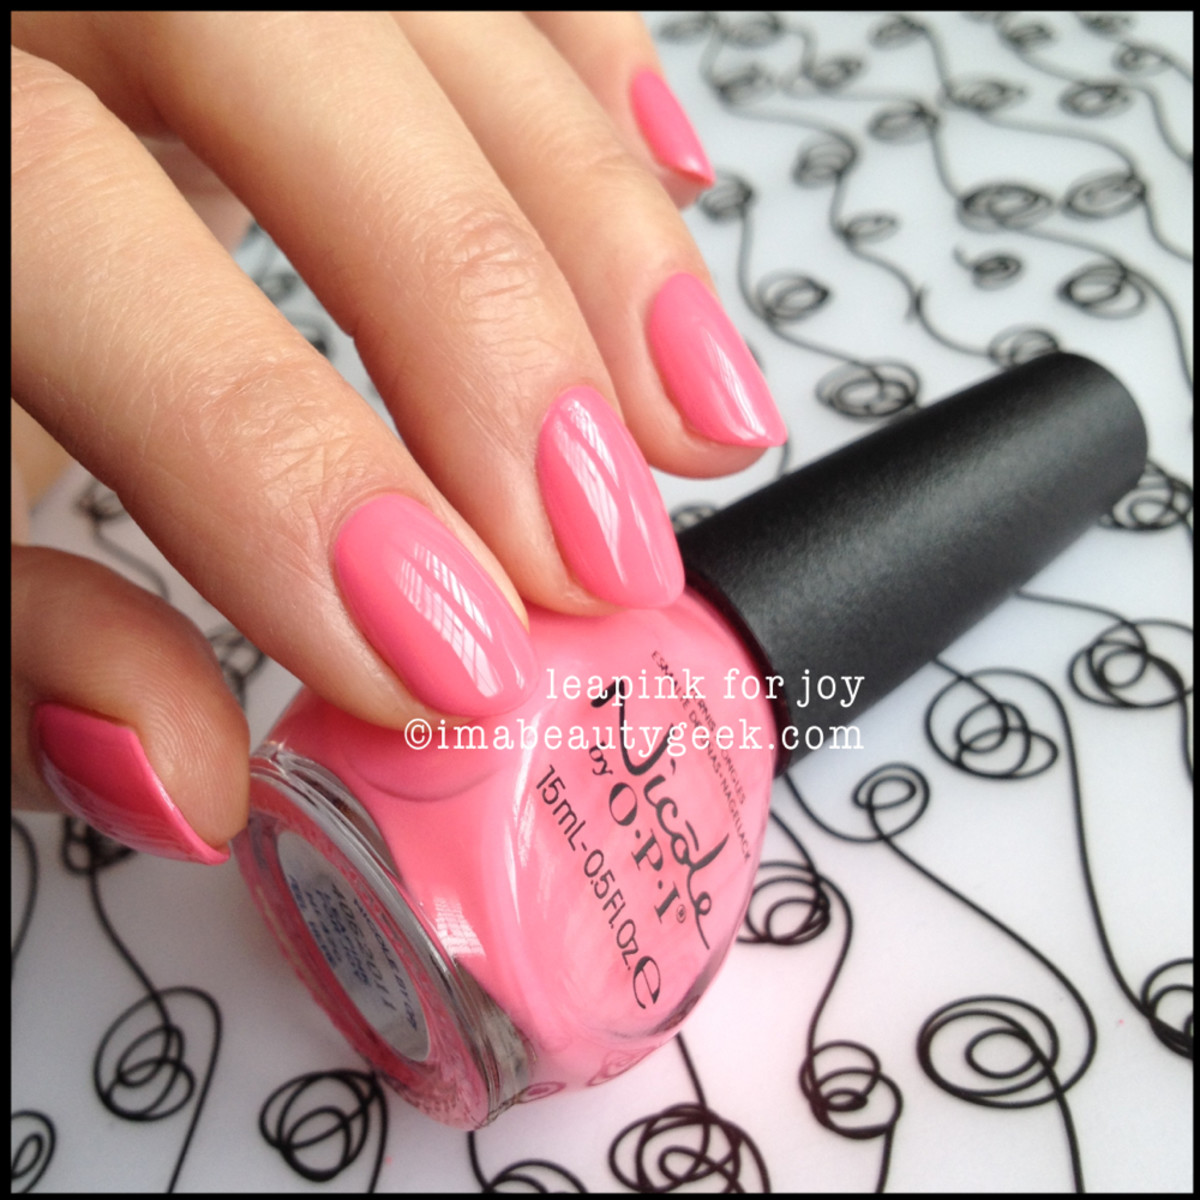 Nicole by OPI Summer 2014_Nicole by OPI LeaPink for Joy Seize the Summer 2014